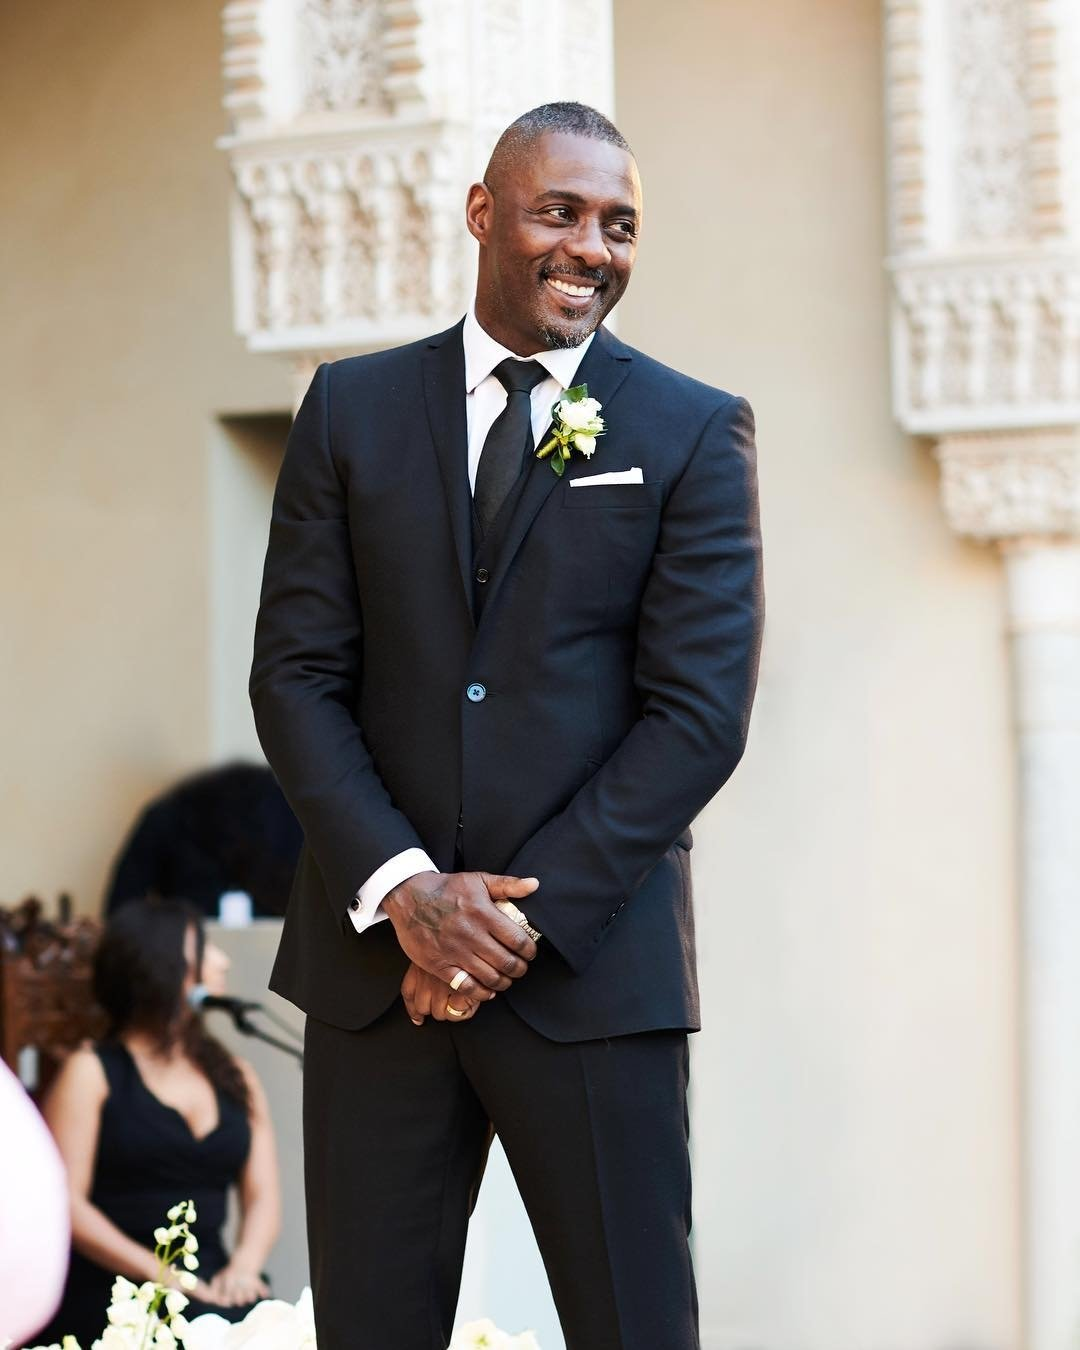 Idris Elba and Sabrina Dhowre tie the knot in Morocco. [PHOTOS] 2